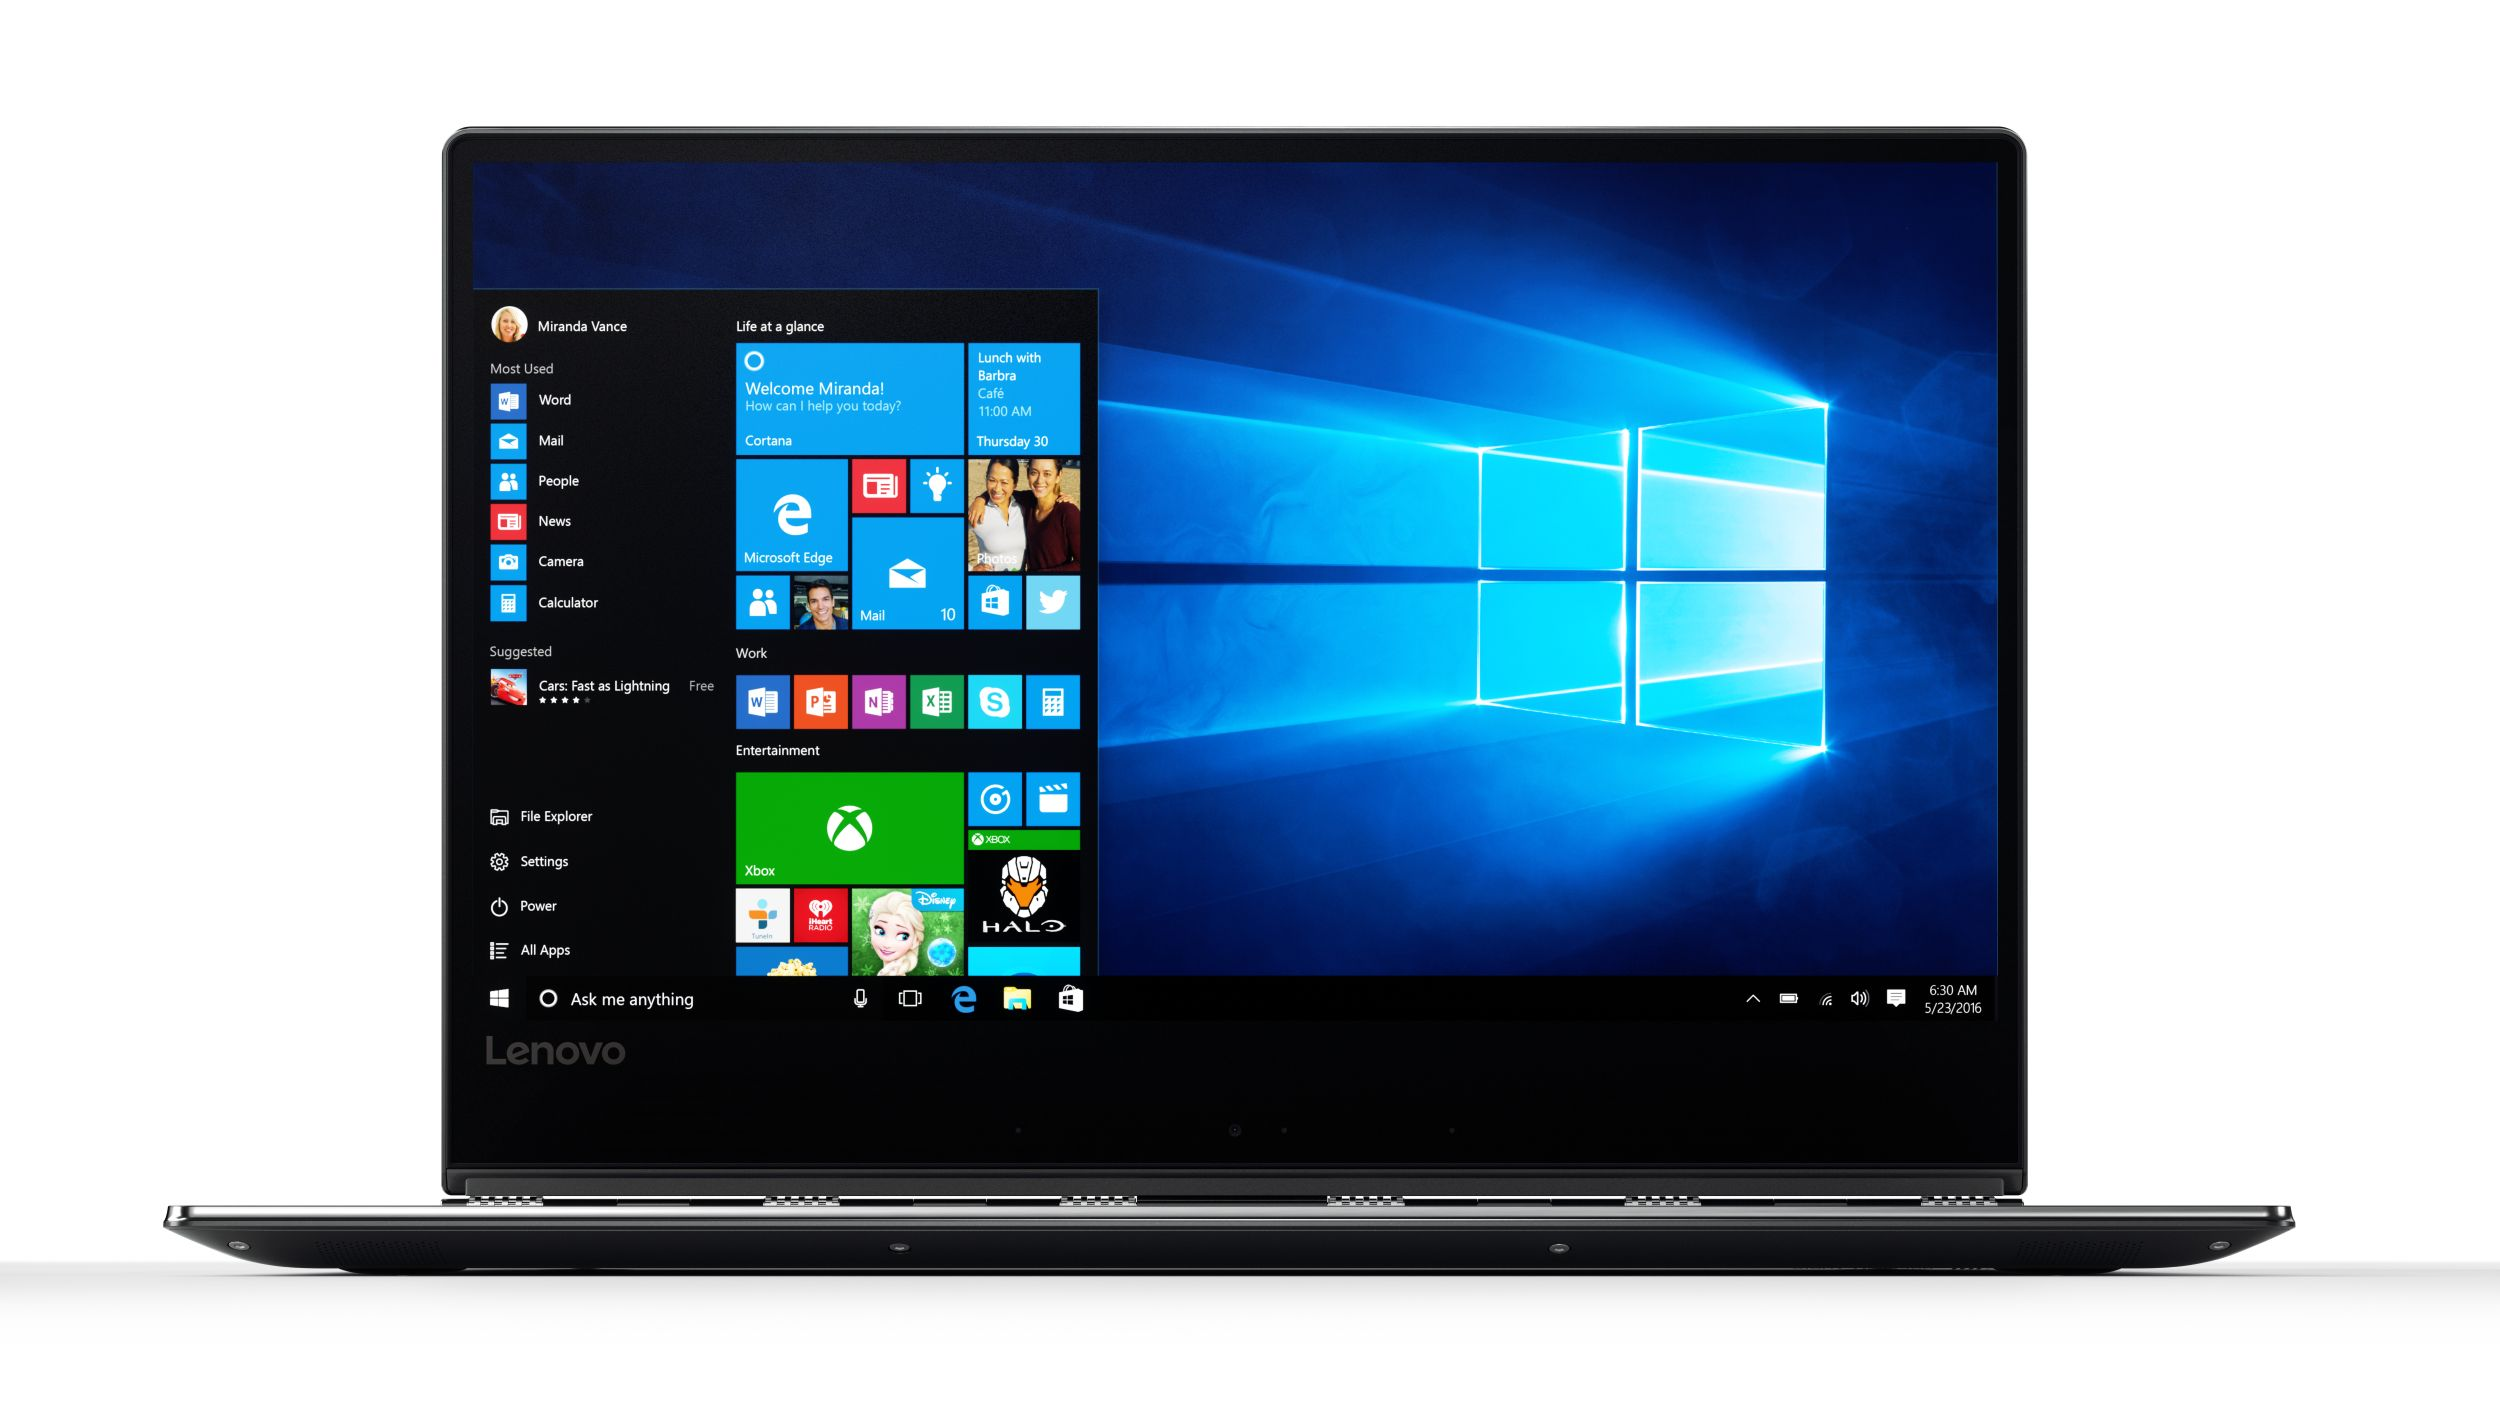 "Lenovo YOGA 910-13IKB i5-7200U 3,10GHz/8GB/SSD 256GB/13,9"" 4K/IPS/multitouch/WIN10 šedá 80VF001RCK"